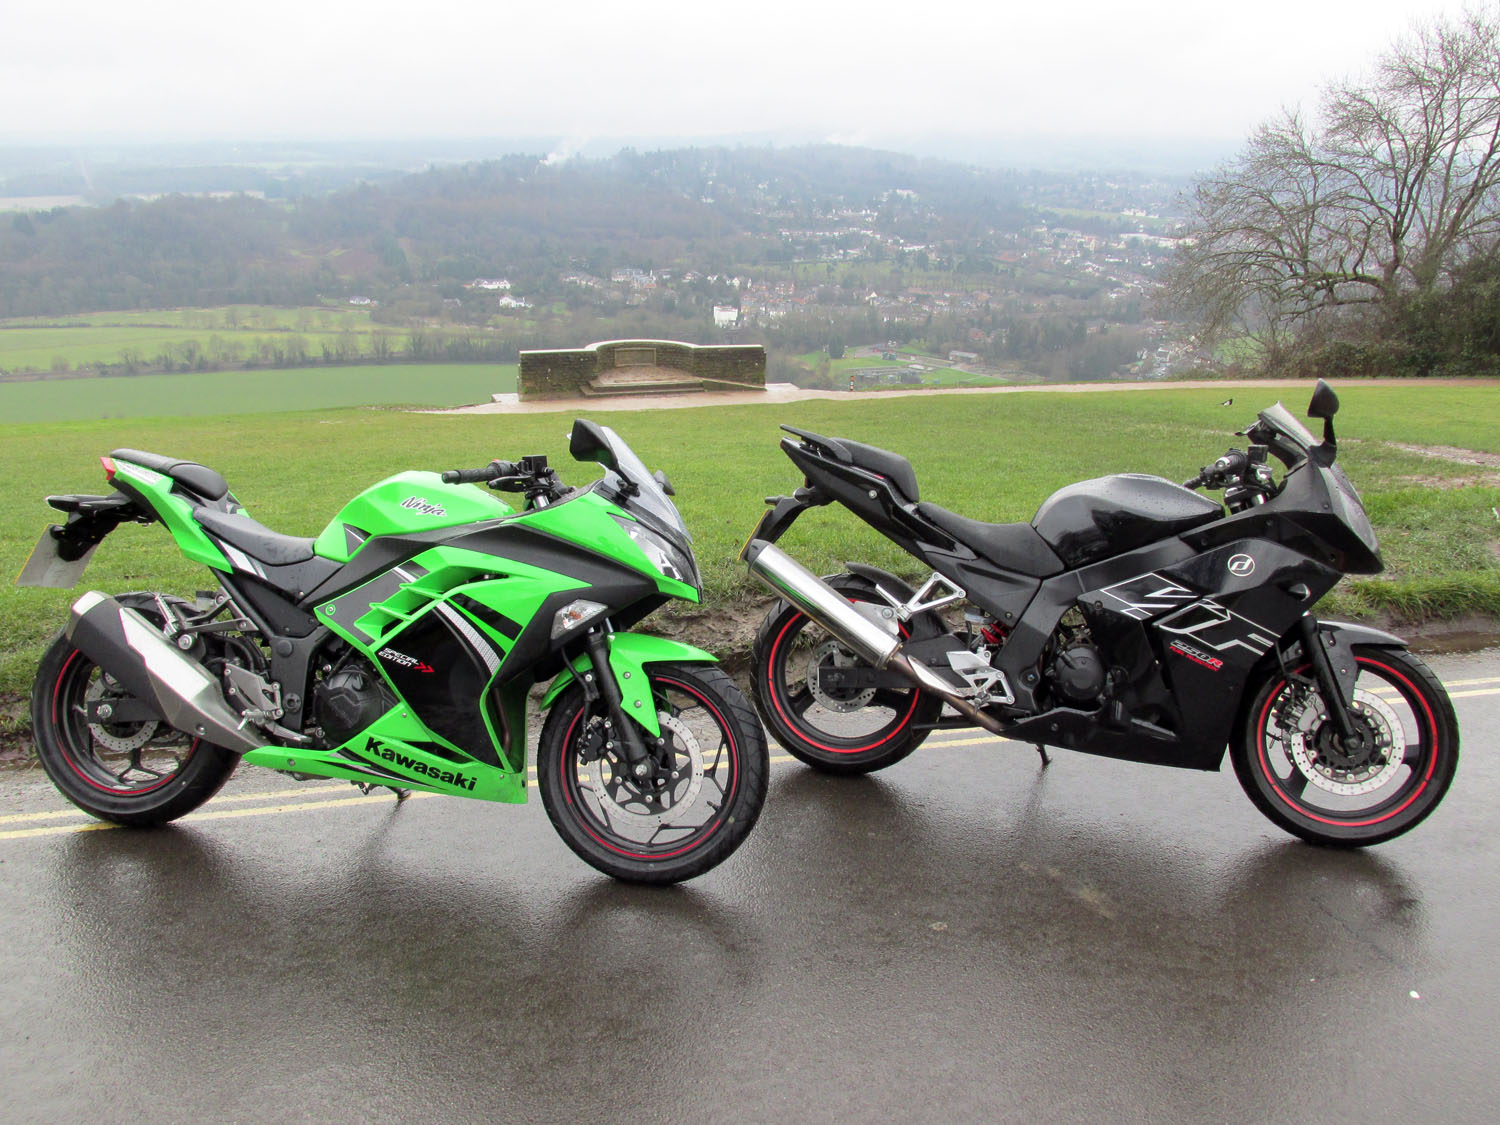 2016 kawasaki ninja 300 review bike review - In Terms Of Performance This Head To Head Is A Foregone Conclusion At 39hp 14 More Than The Vjf250 The Ninja 300 Is The Faster Bike